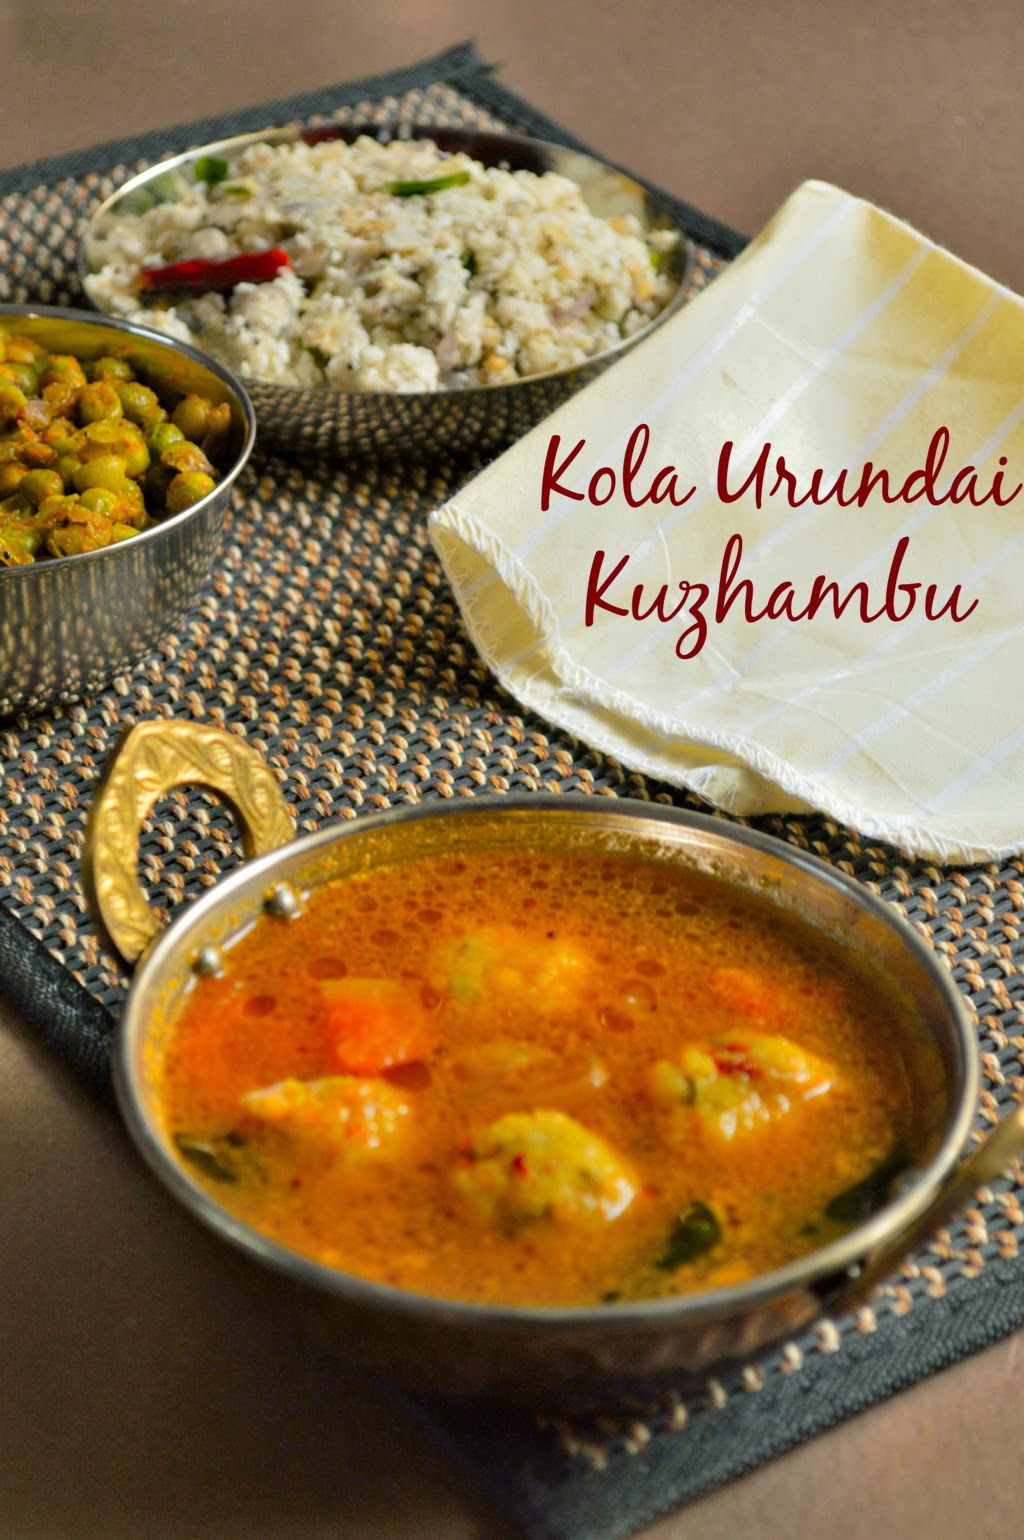 kola urundai kuzhambu, Kuzhambu Recipes, Lunch Curries Recipes, urundai kulambu recipe, how to make urunda kuzhambu recipe, step by step pictures, kola urundai kuzhambu recipe